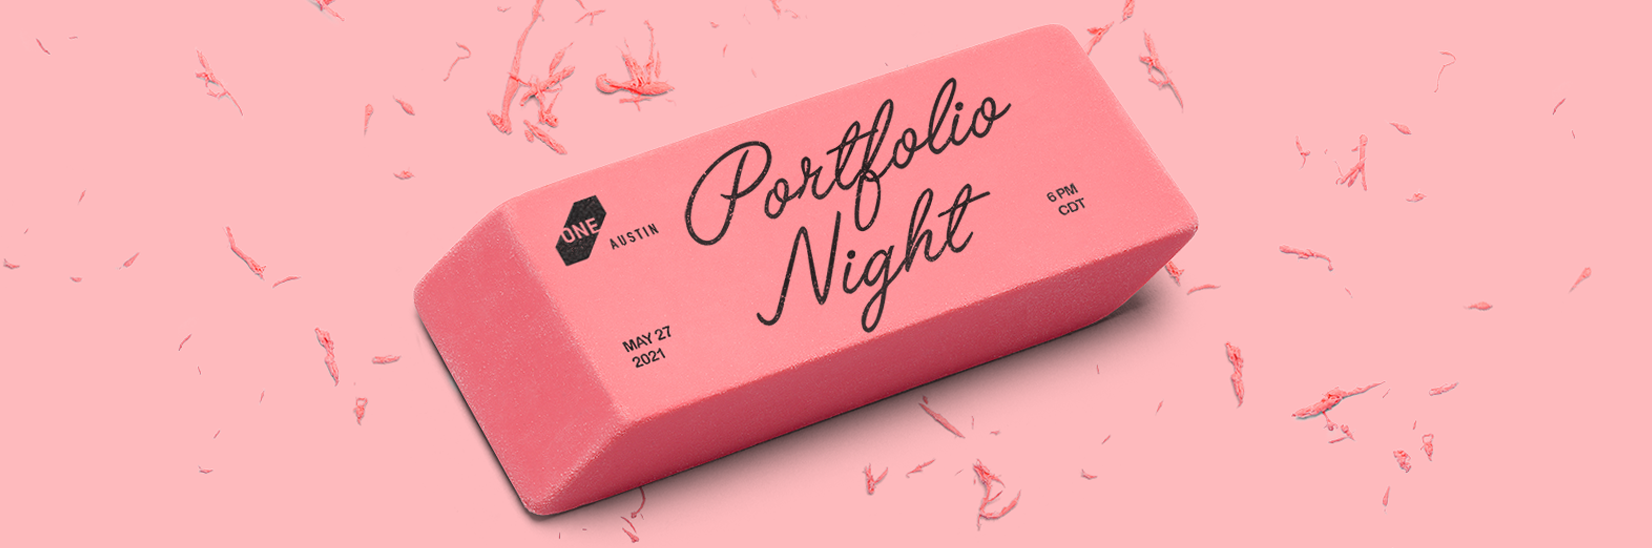 One Club Austin Portfolio Night